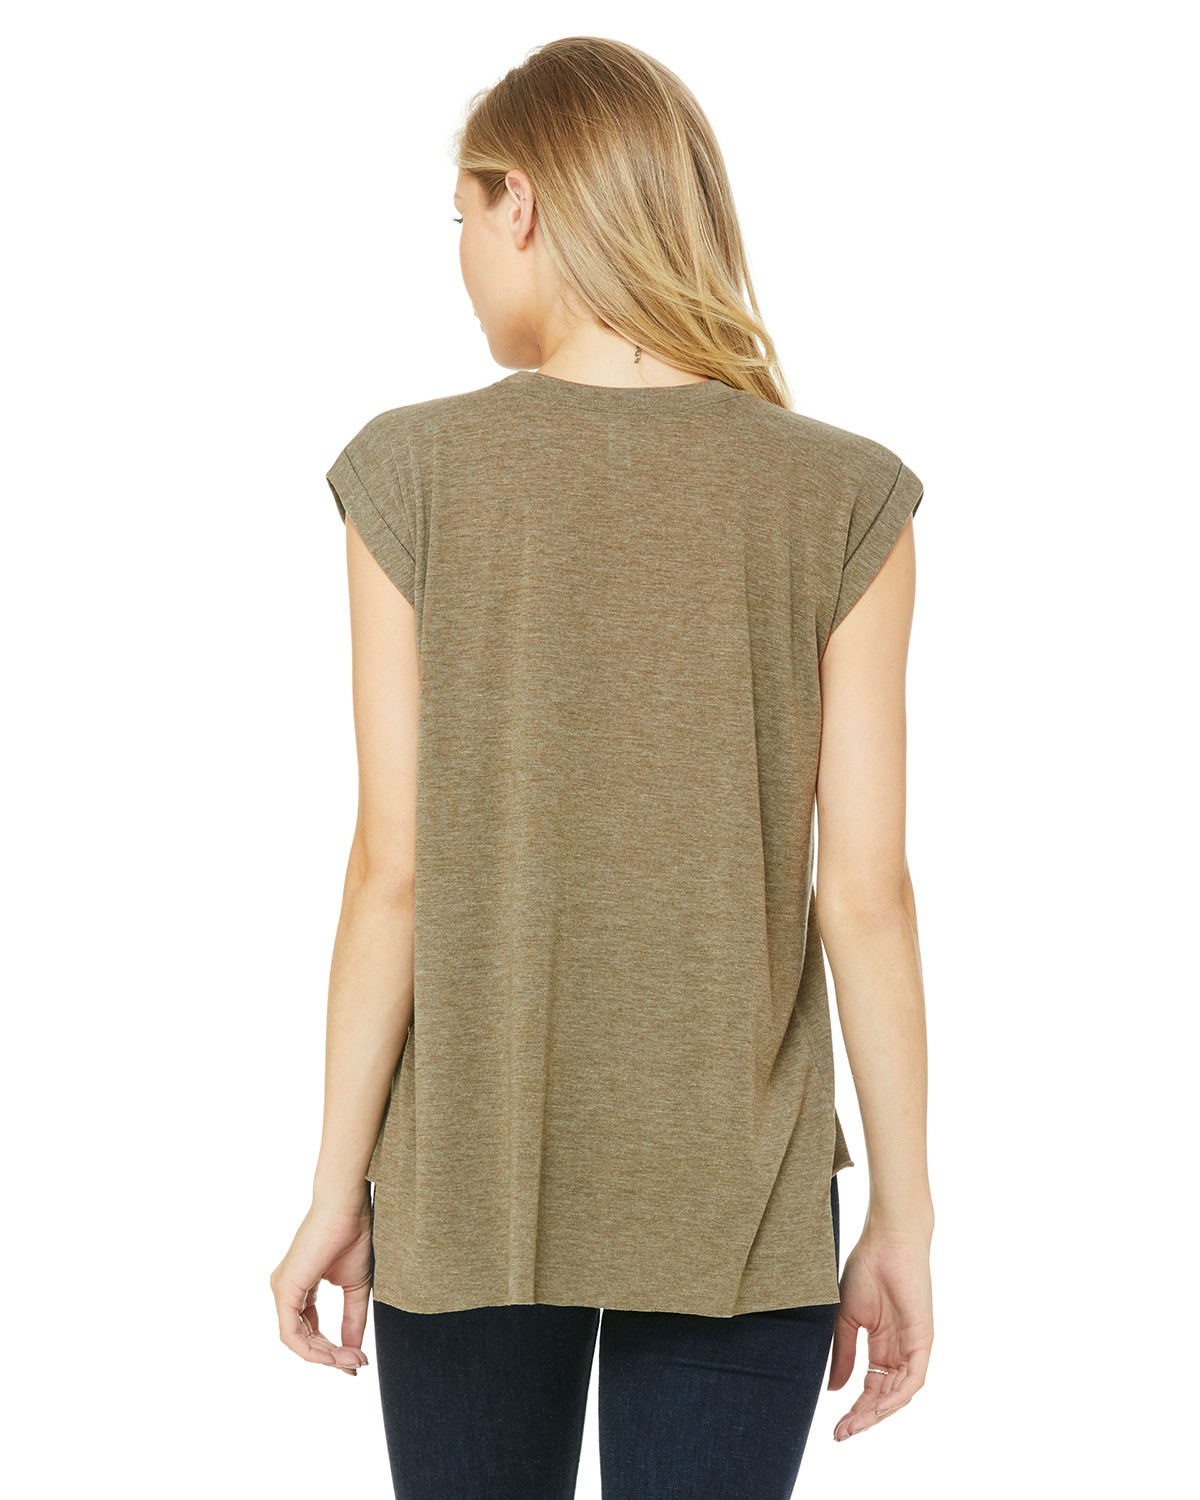 8804 Bella + Canvas HEATHER OLIVE